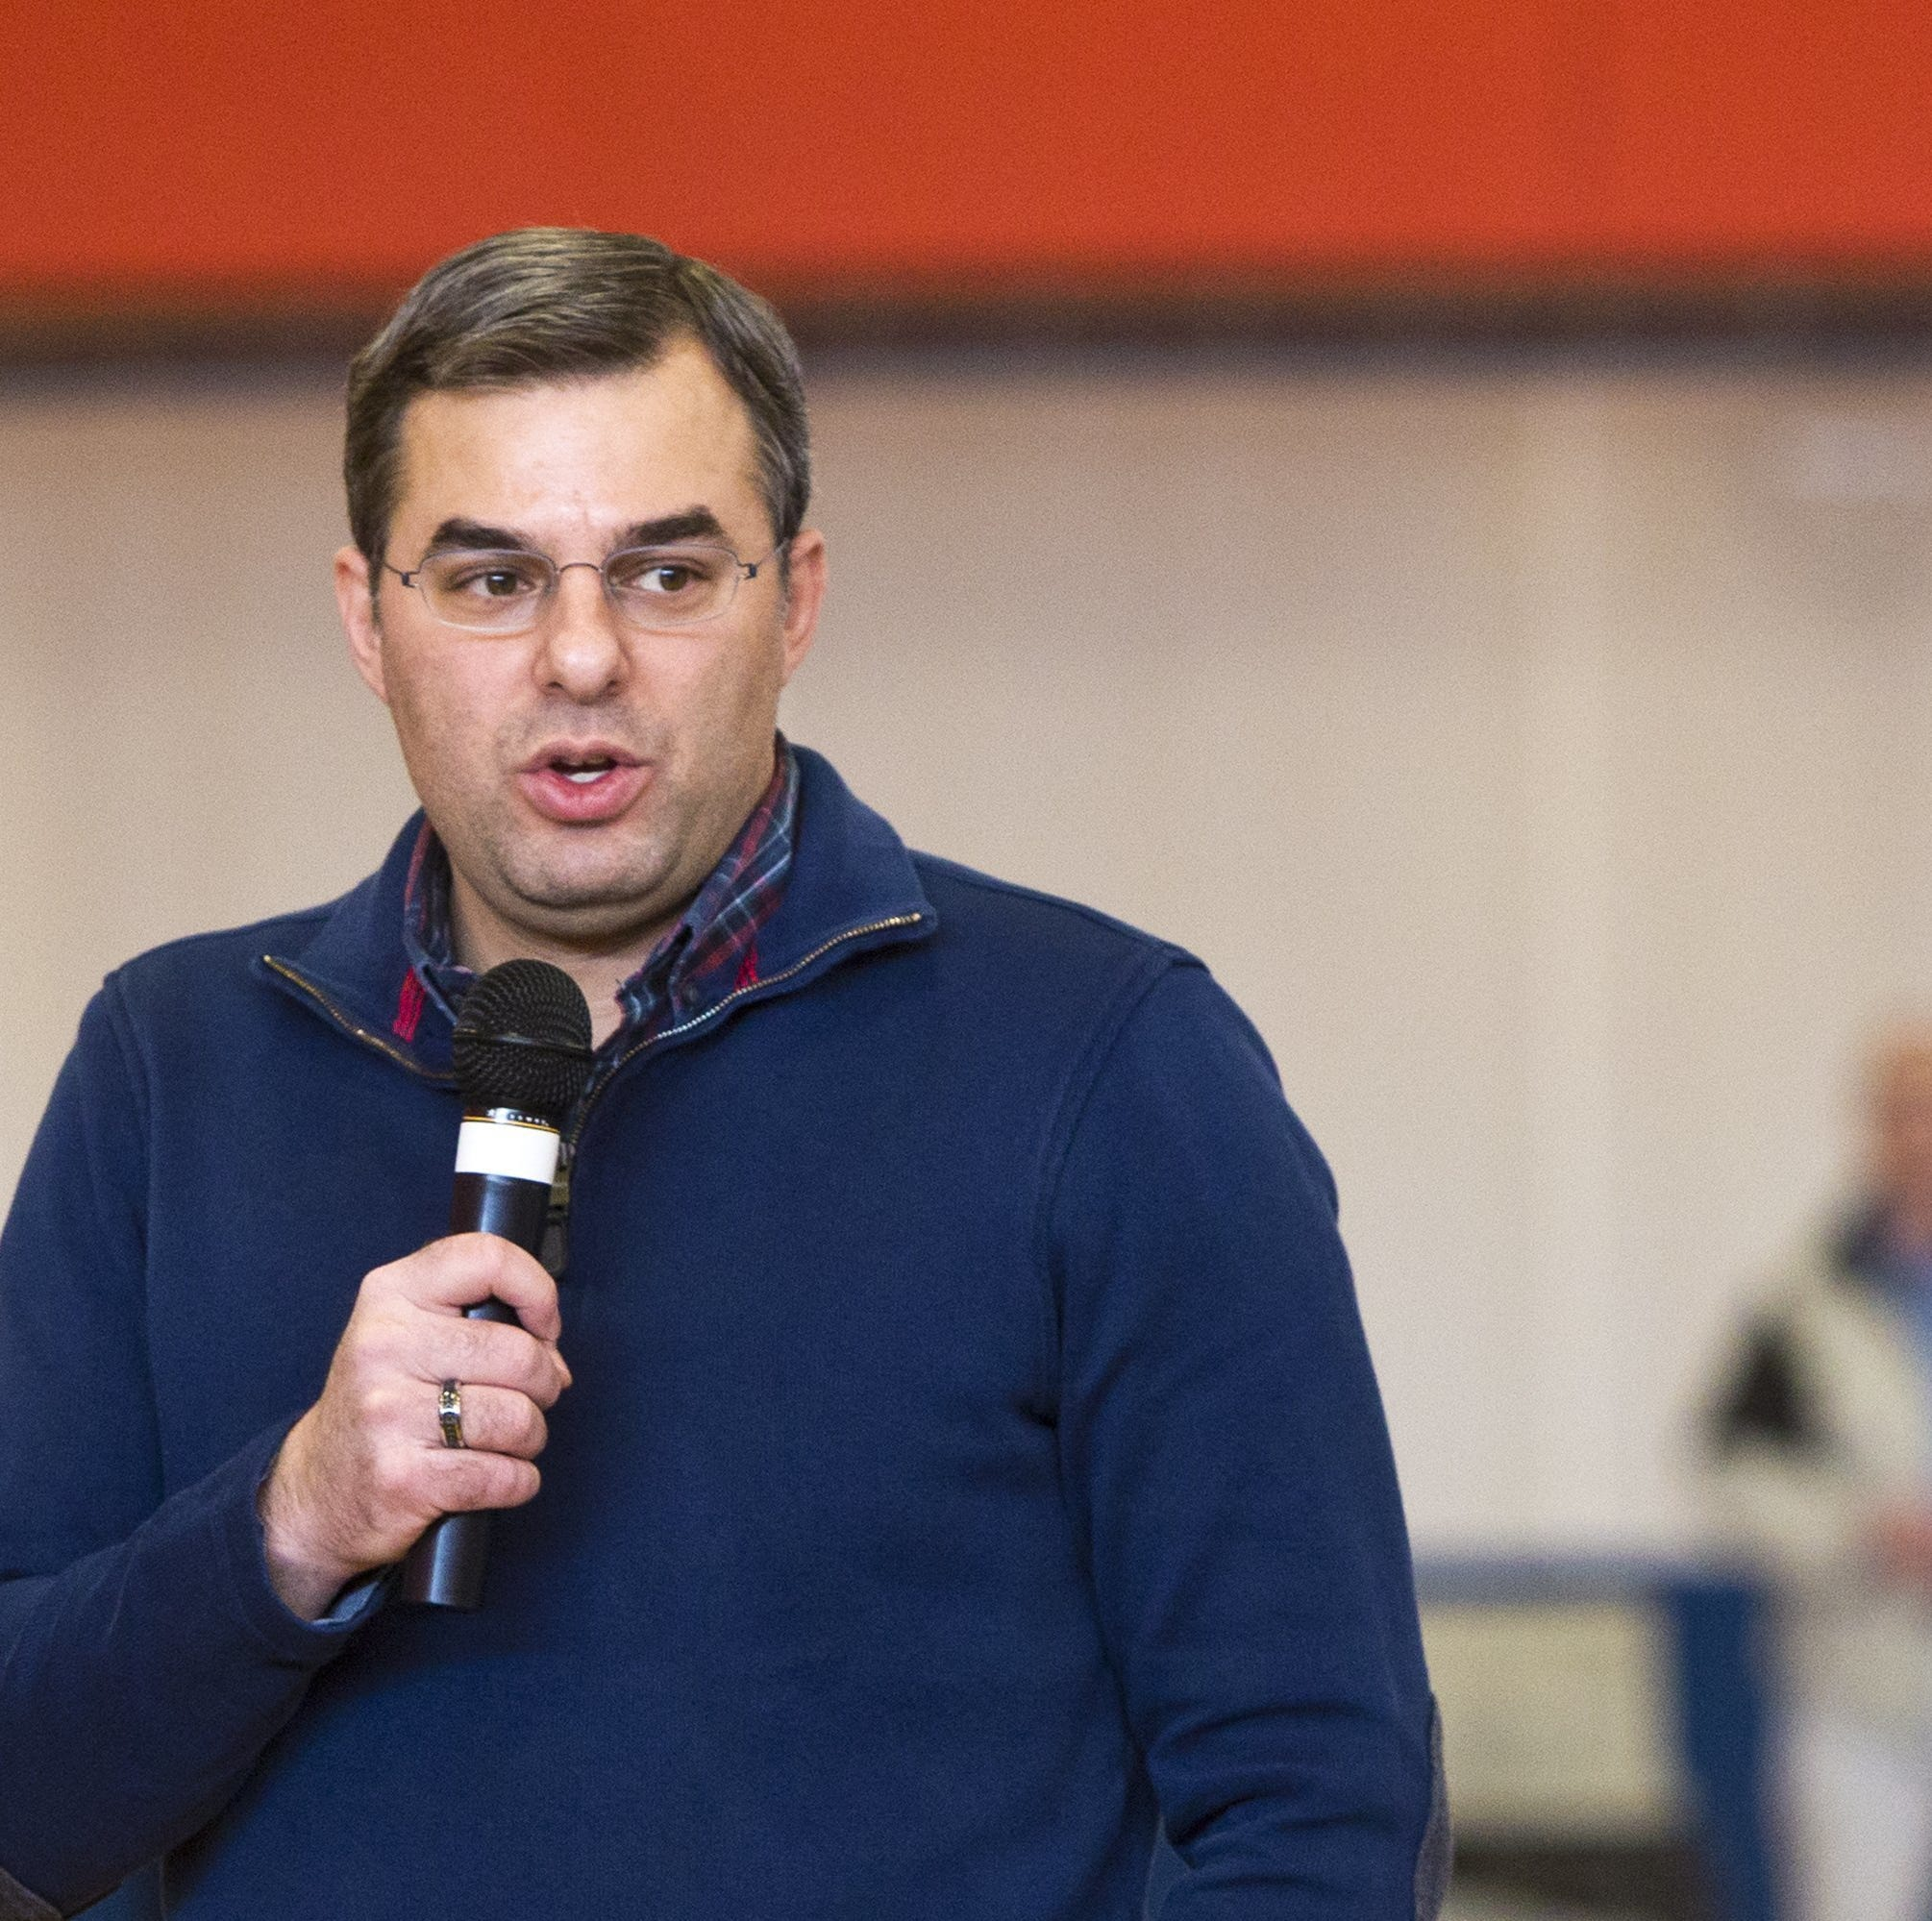 Justin Amash is a real Republican whose call for Trump impeachment matters: Conservative